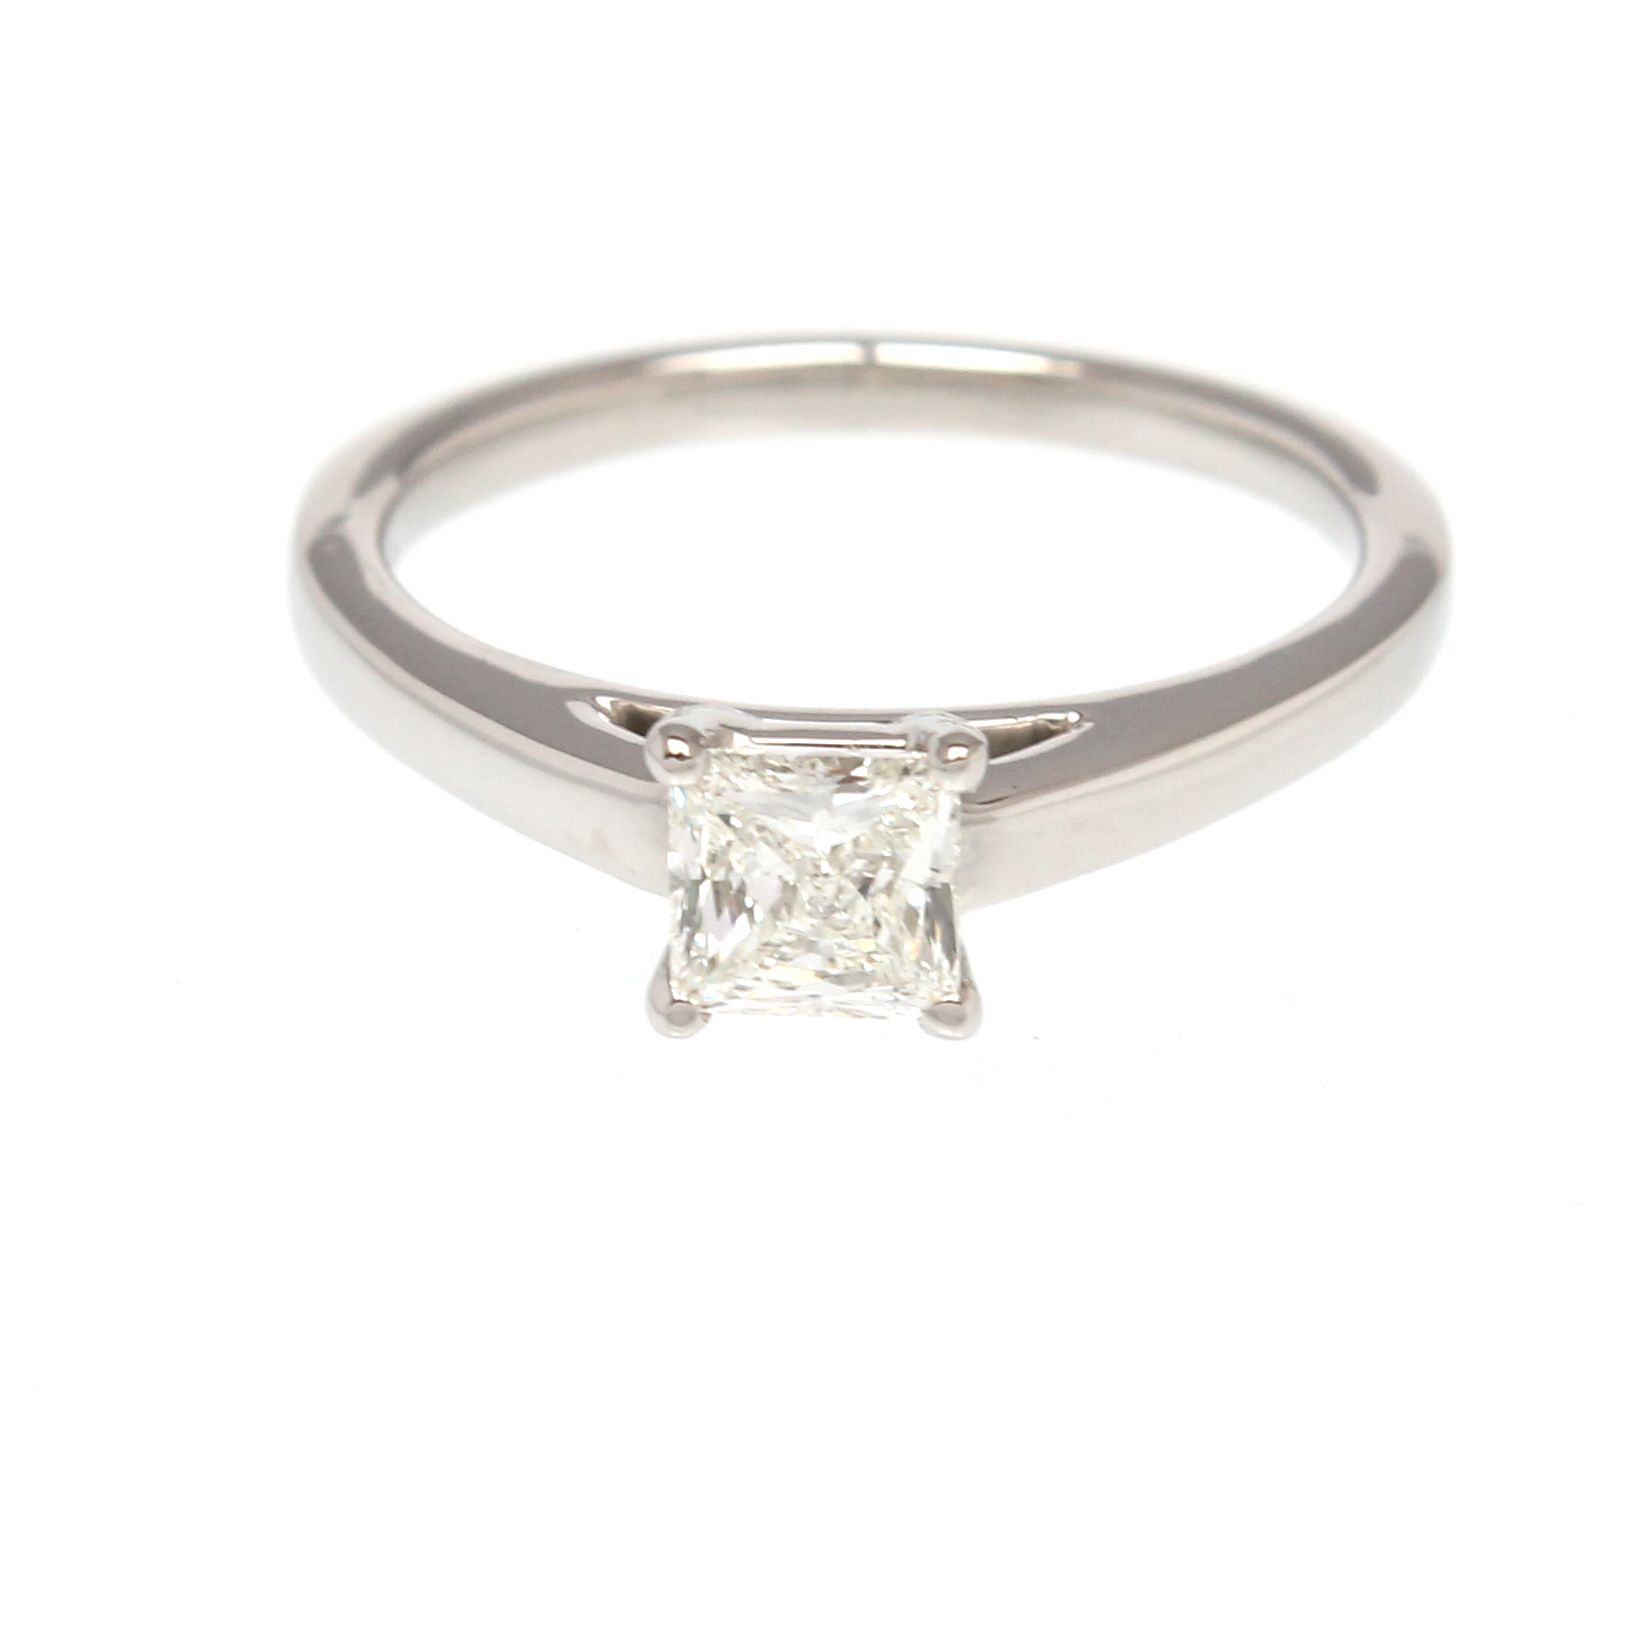 Palladium Single Stone Princess Cut Diamond Ring Intended For Most Recent Princess Wishbone Rings (View 13 of 25)